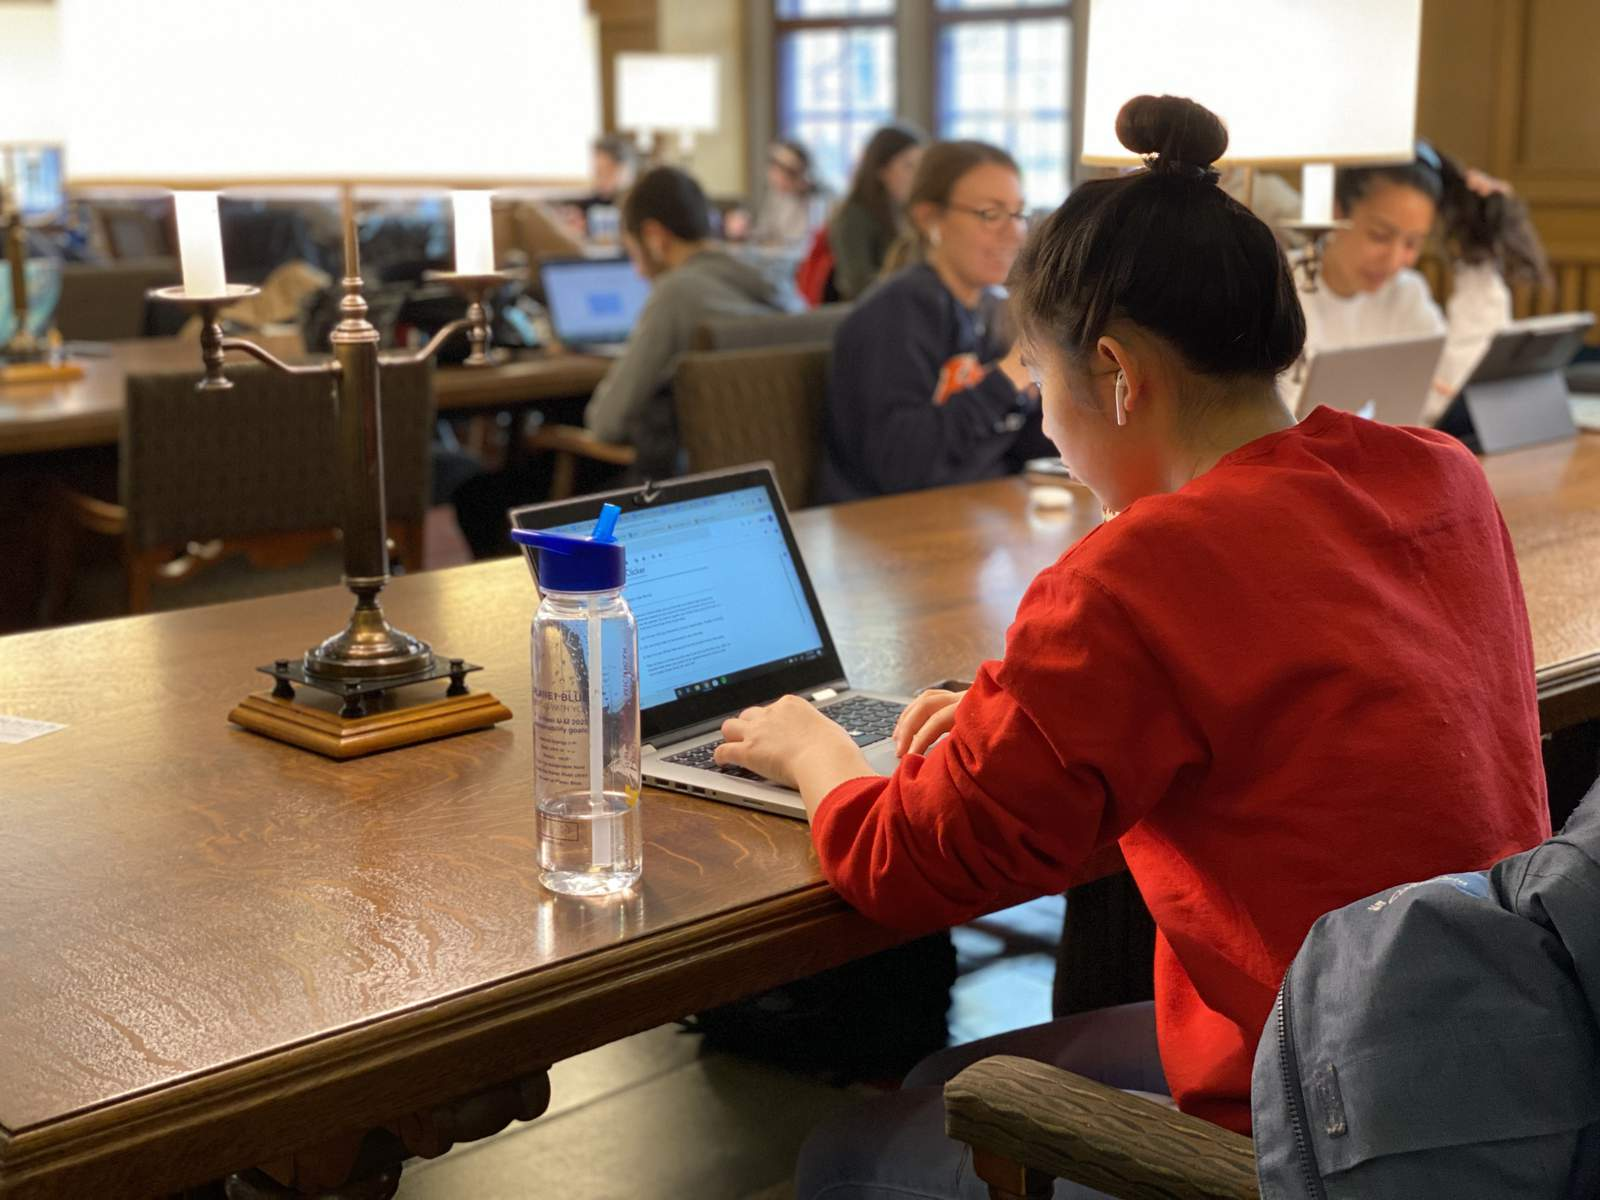 University of Michigan Ann Arbor, Dearborn announce change in grading policies